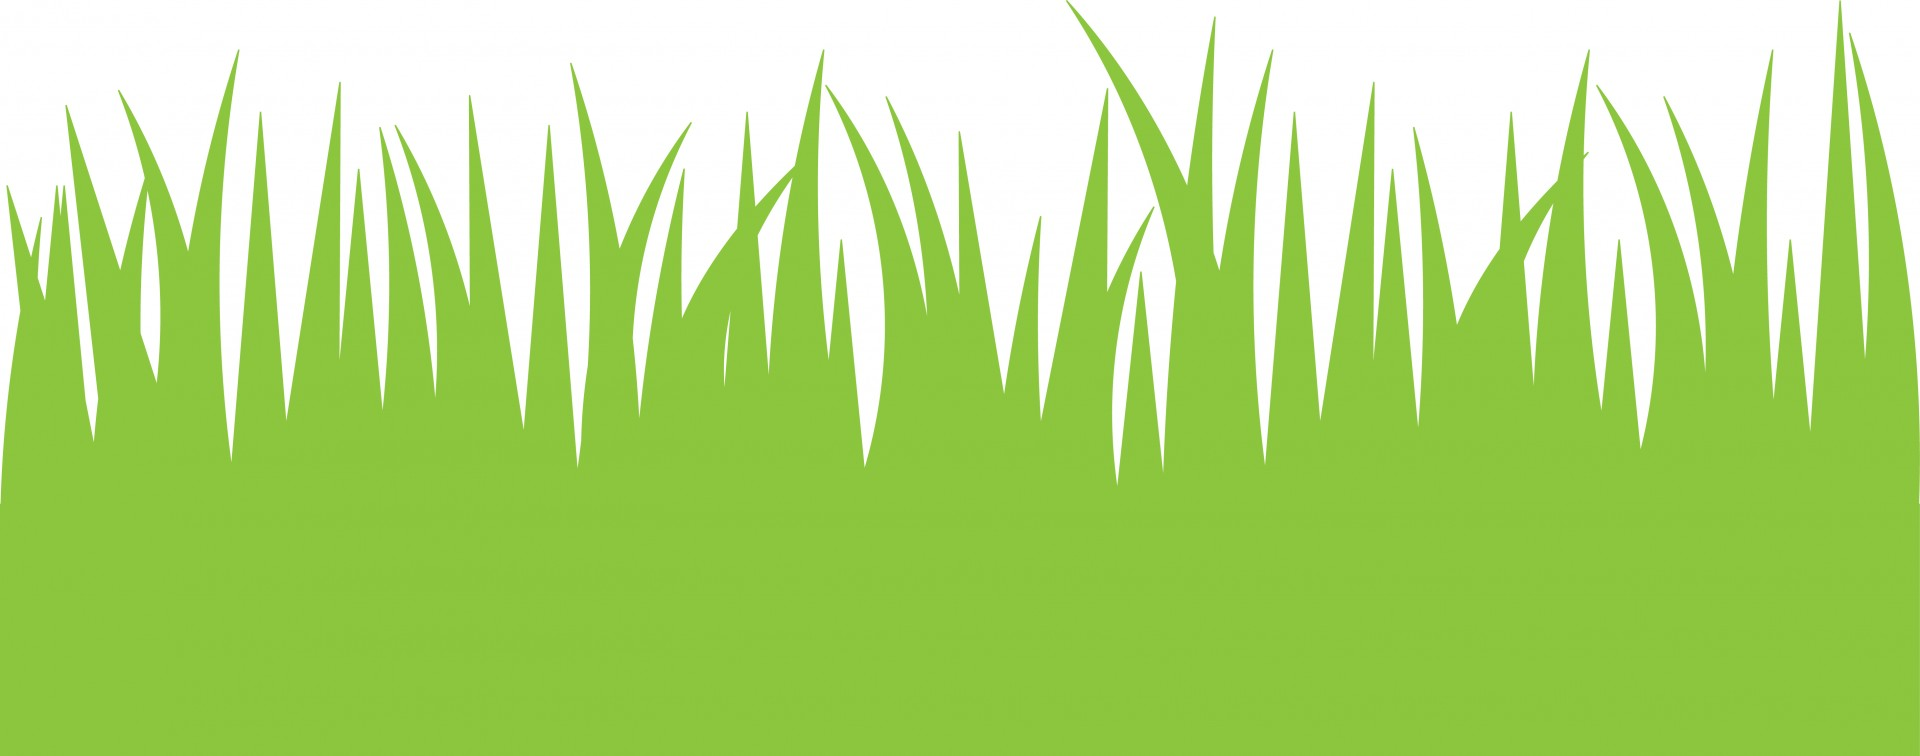 Green grass clipart free pictures